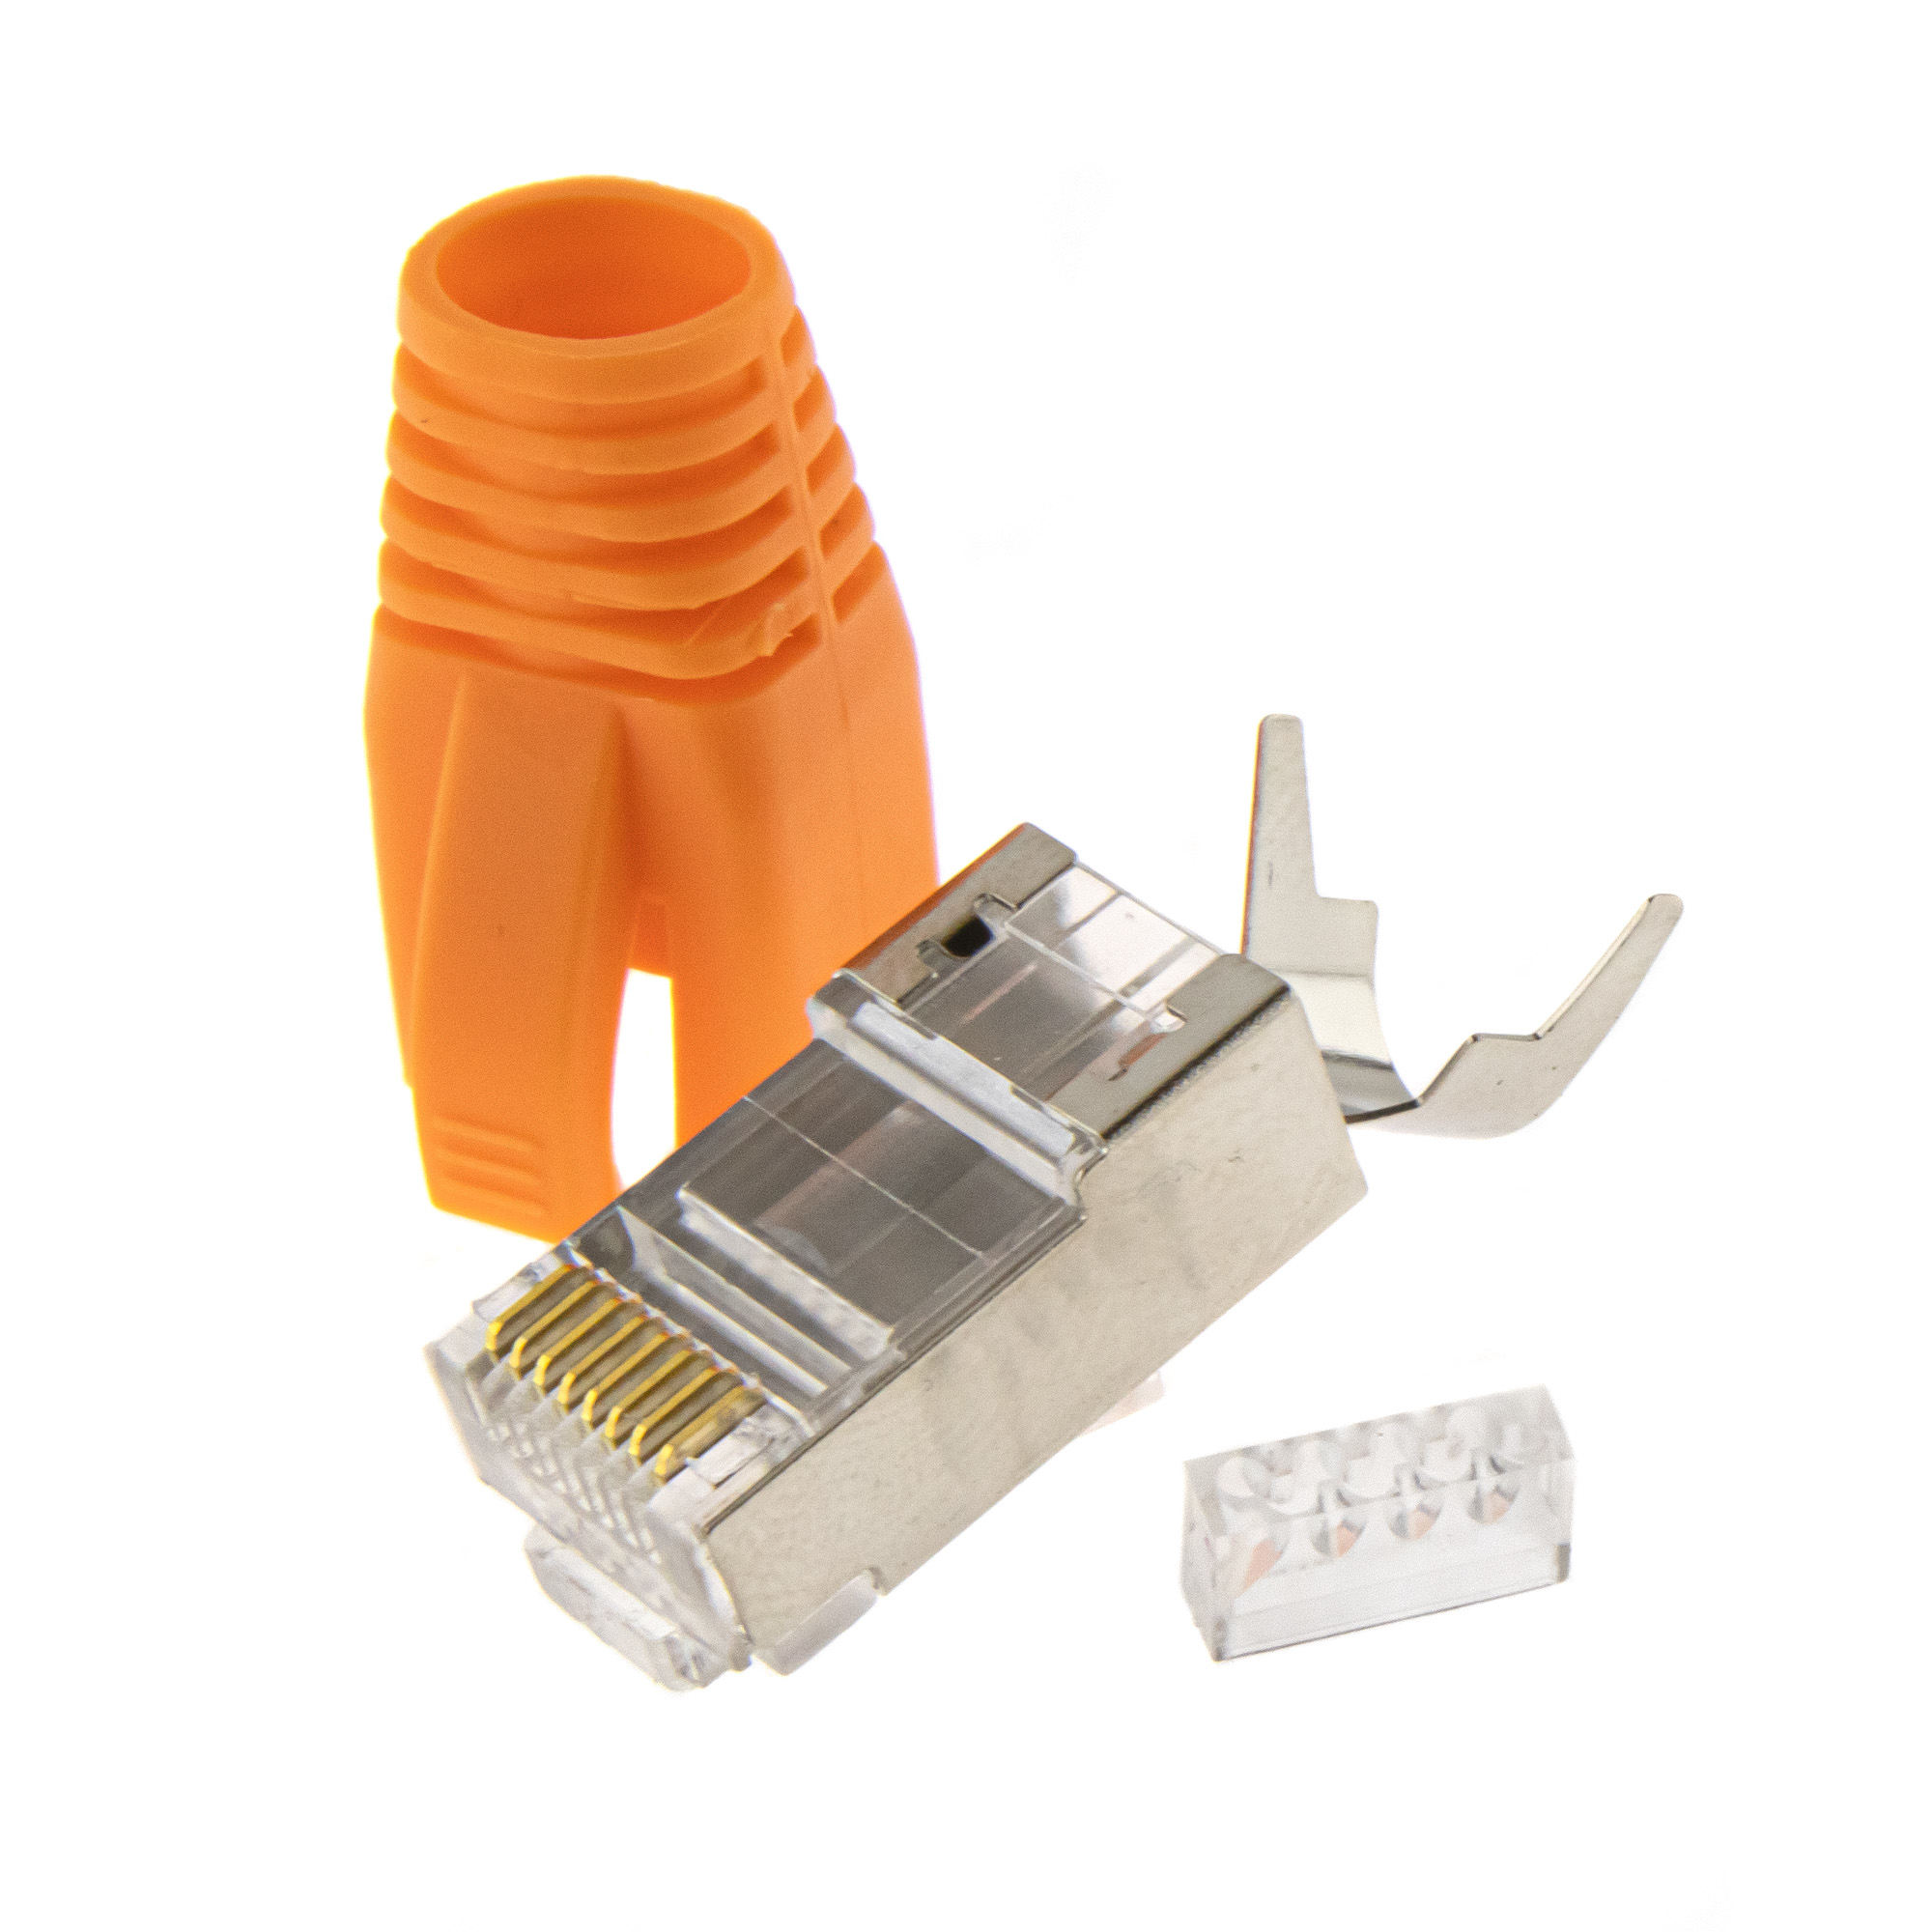 RJ45 connector + insertion aid + plug cap 10PCS - orange